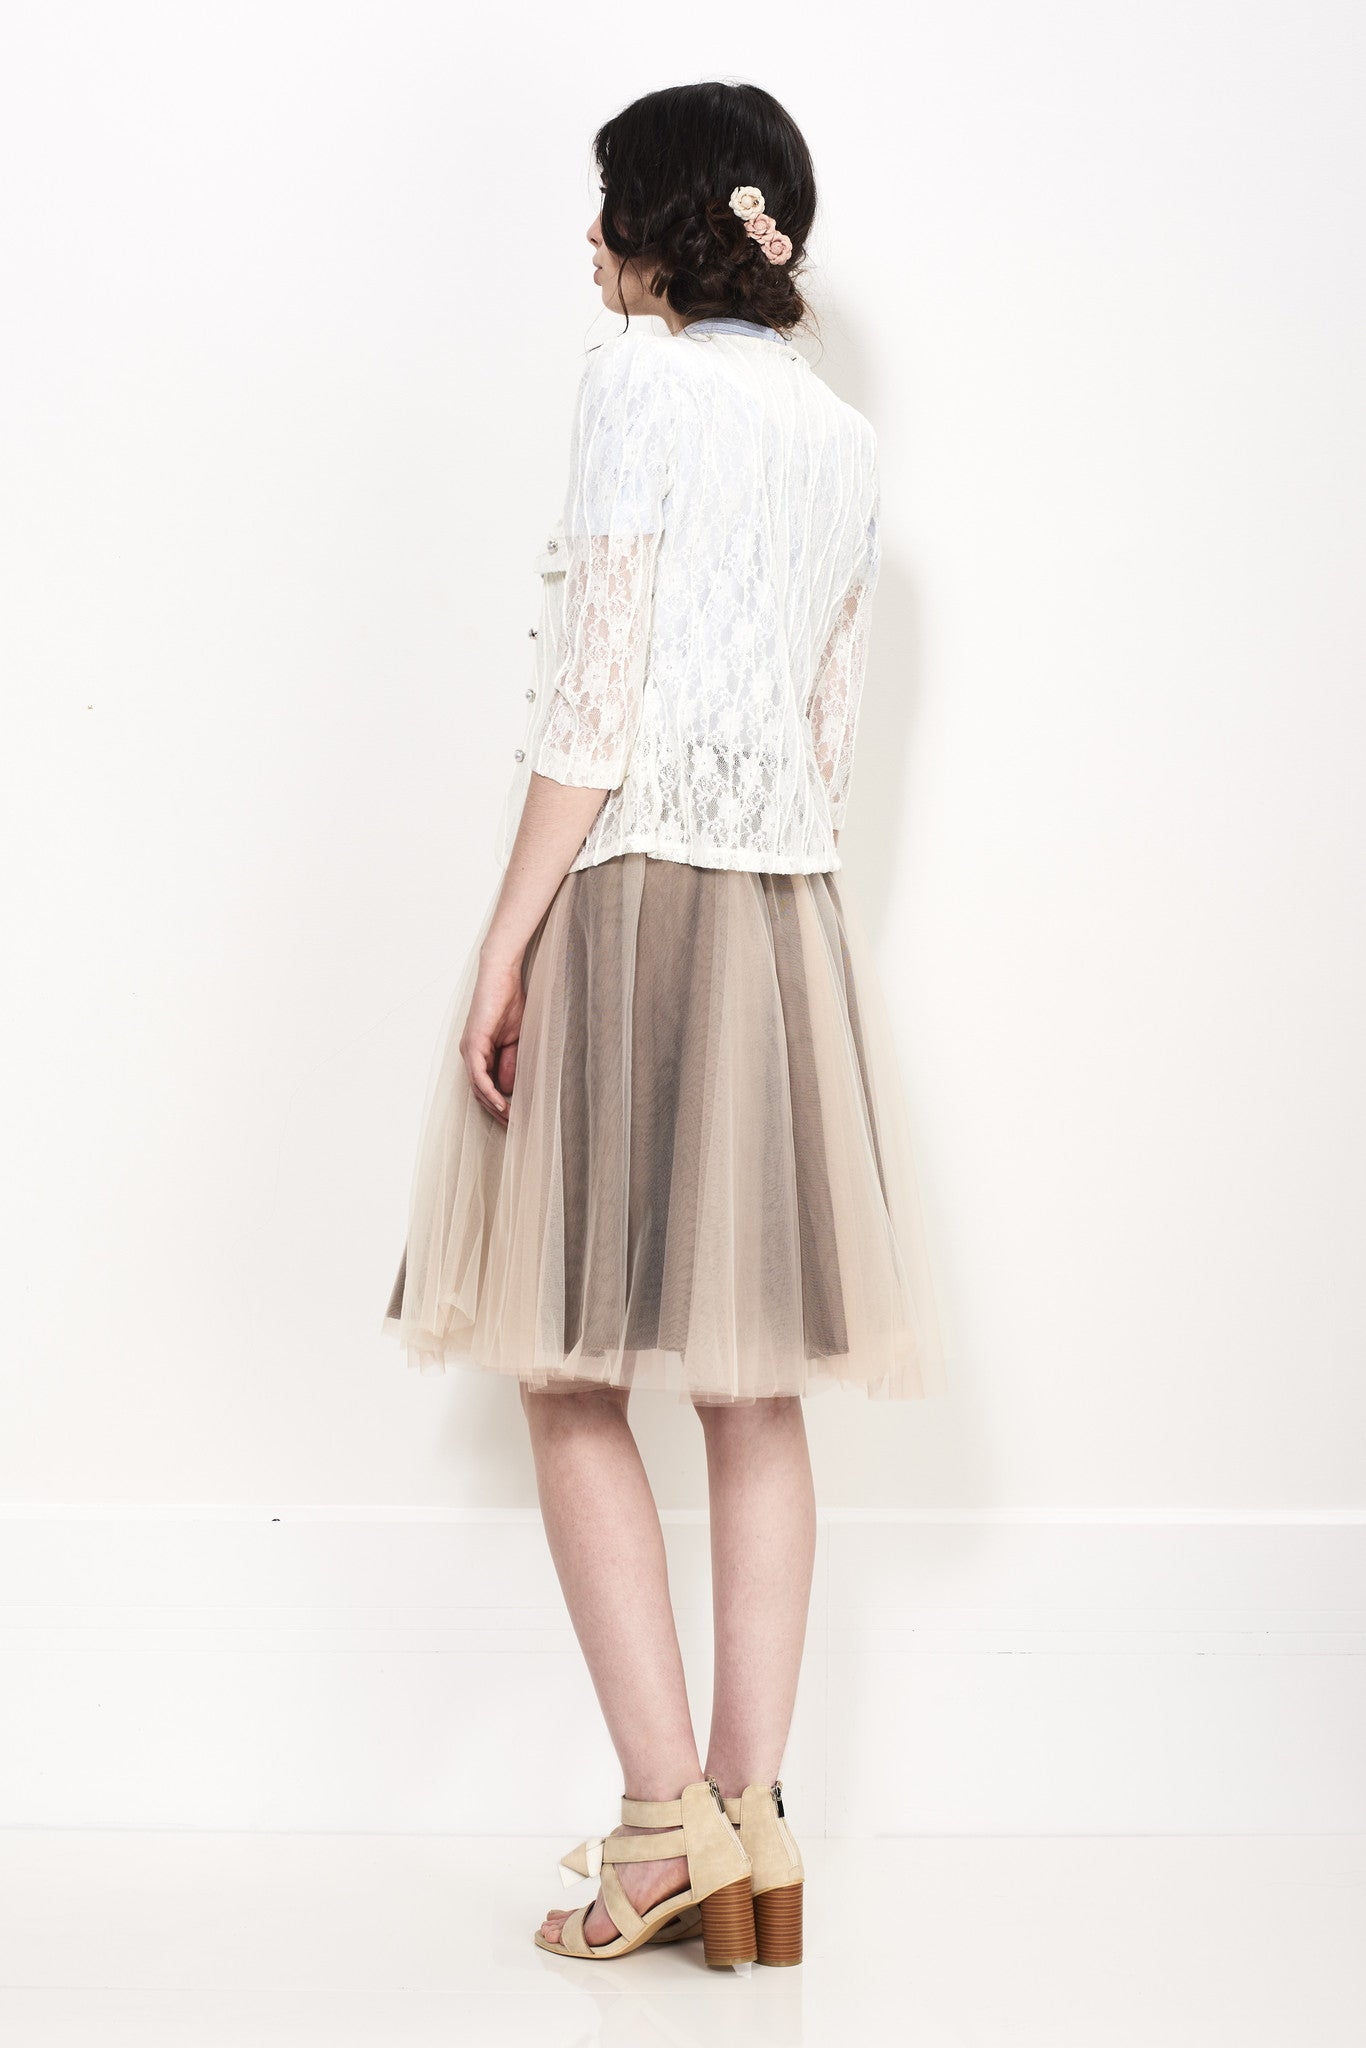 NET SHEER SKIRT - Darccy & Soma London